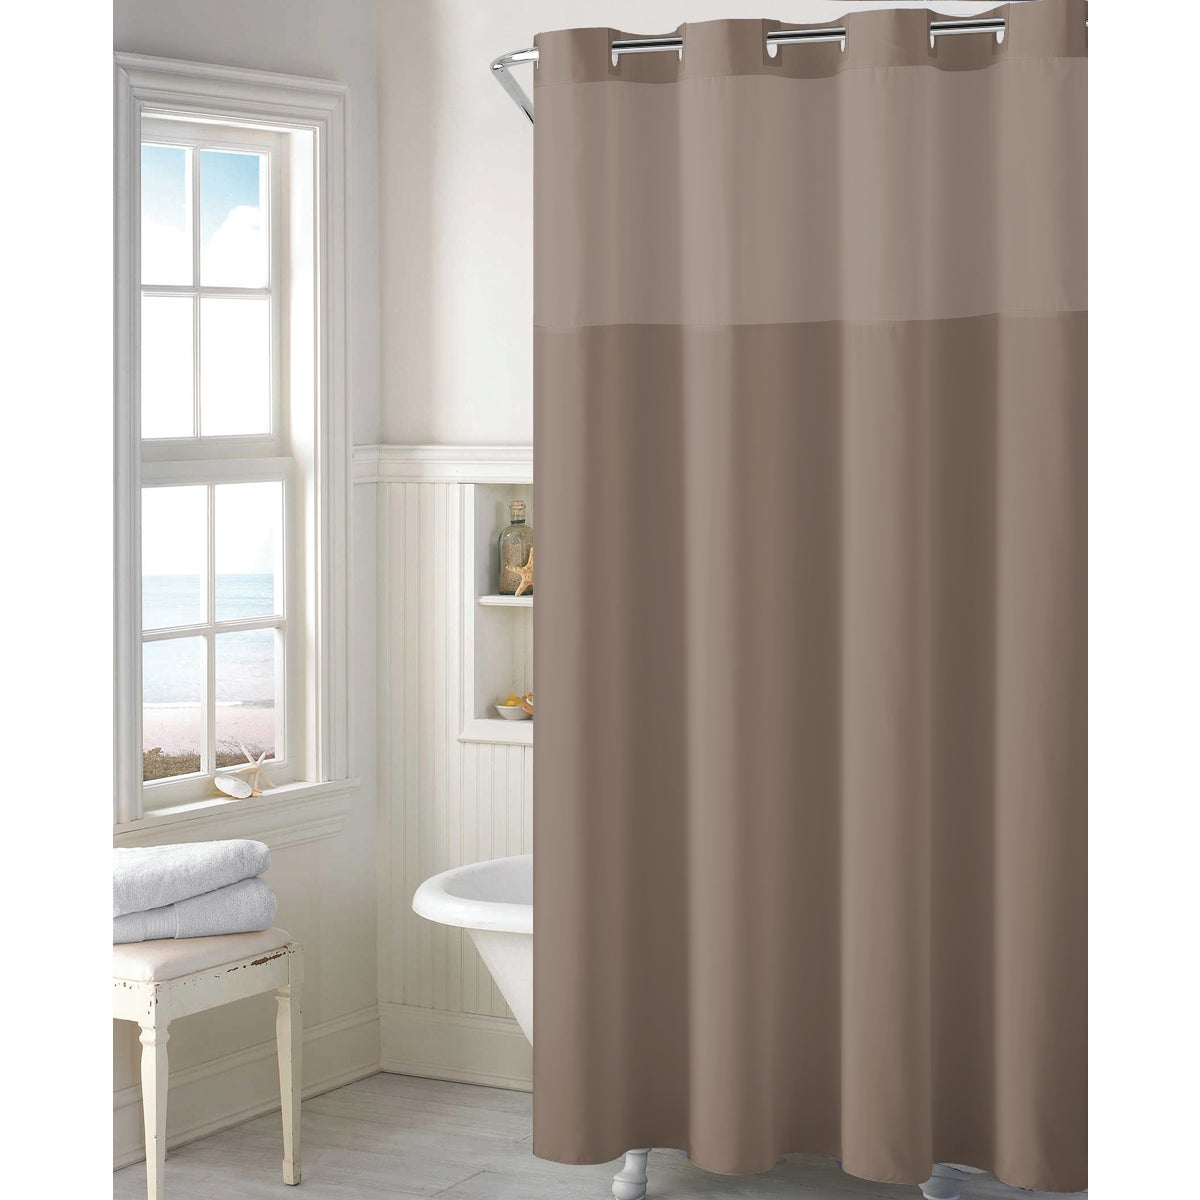 HOOKELSS SHOWER CURTAIN - RBH40MY303 by Swing A Way Mfg Co